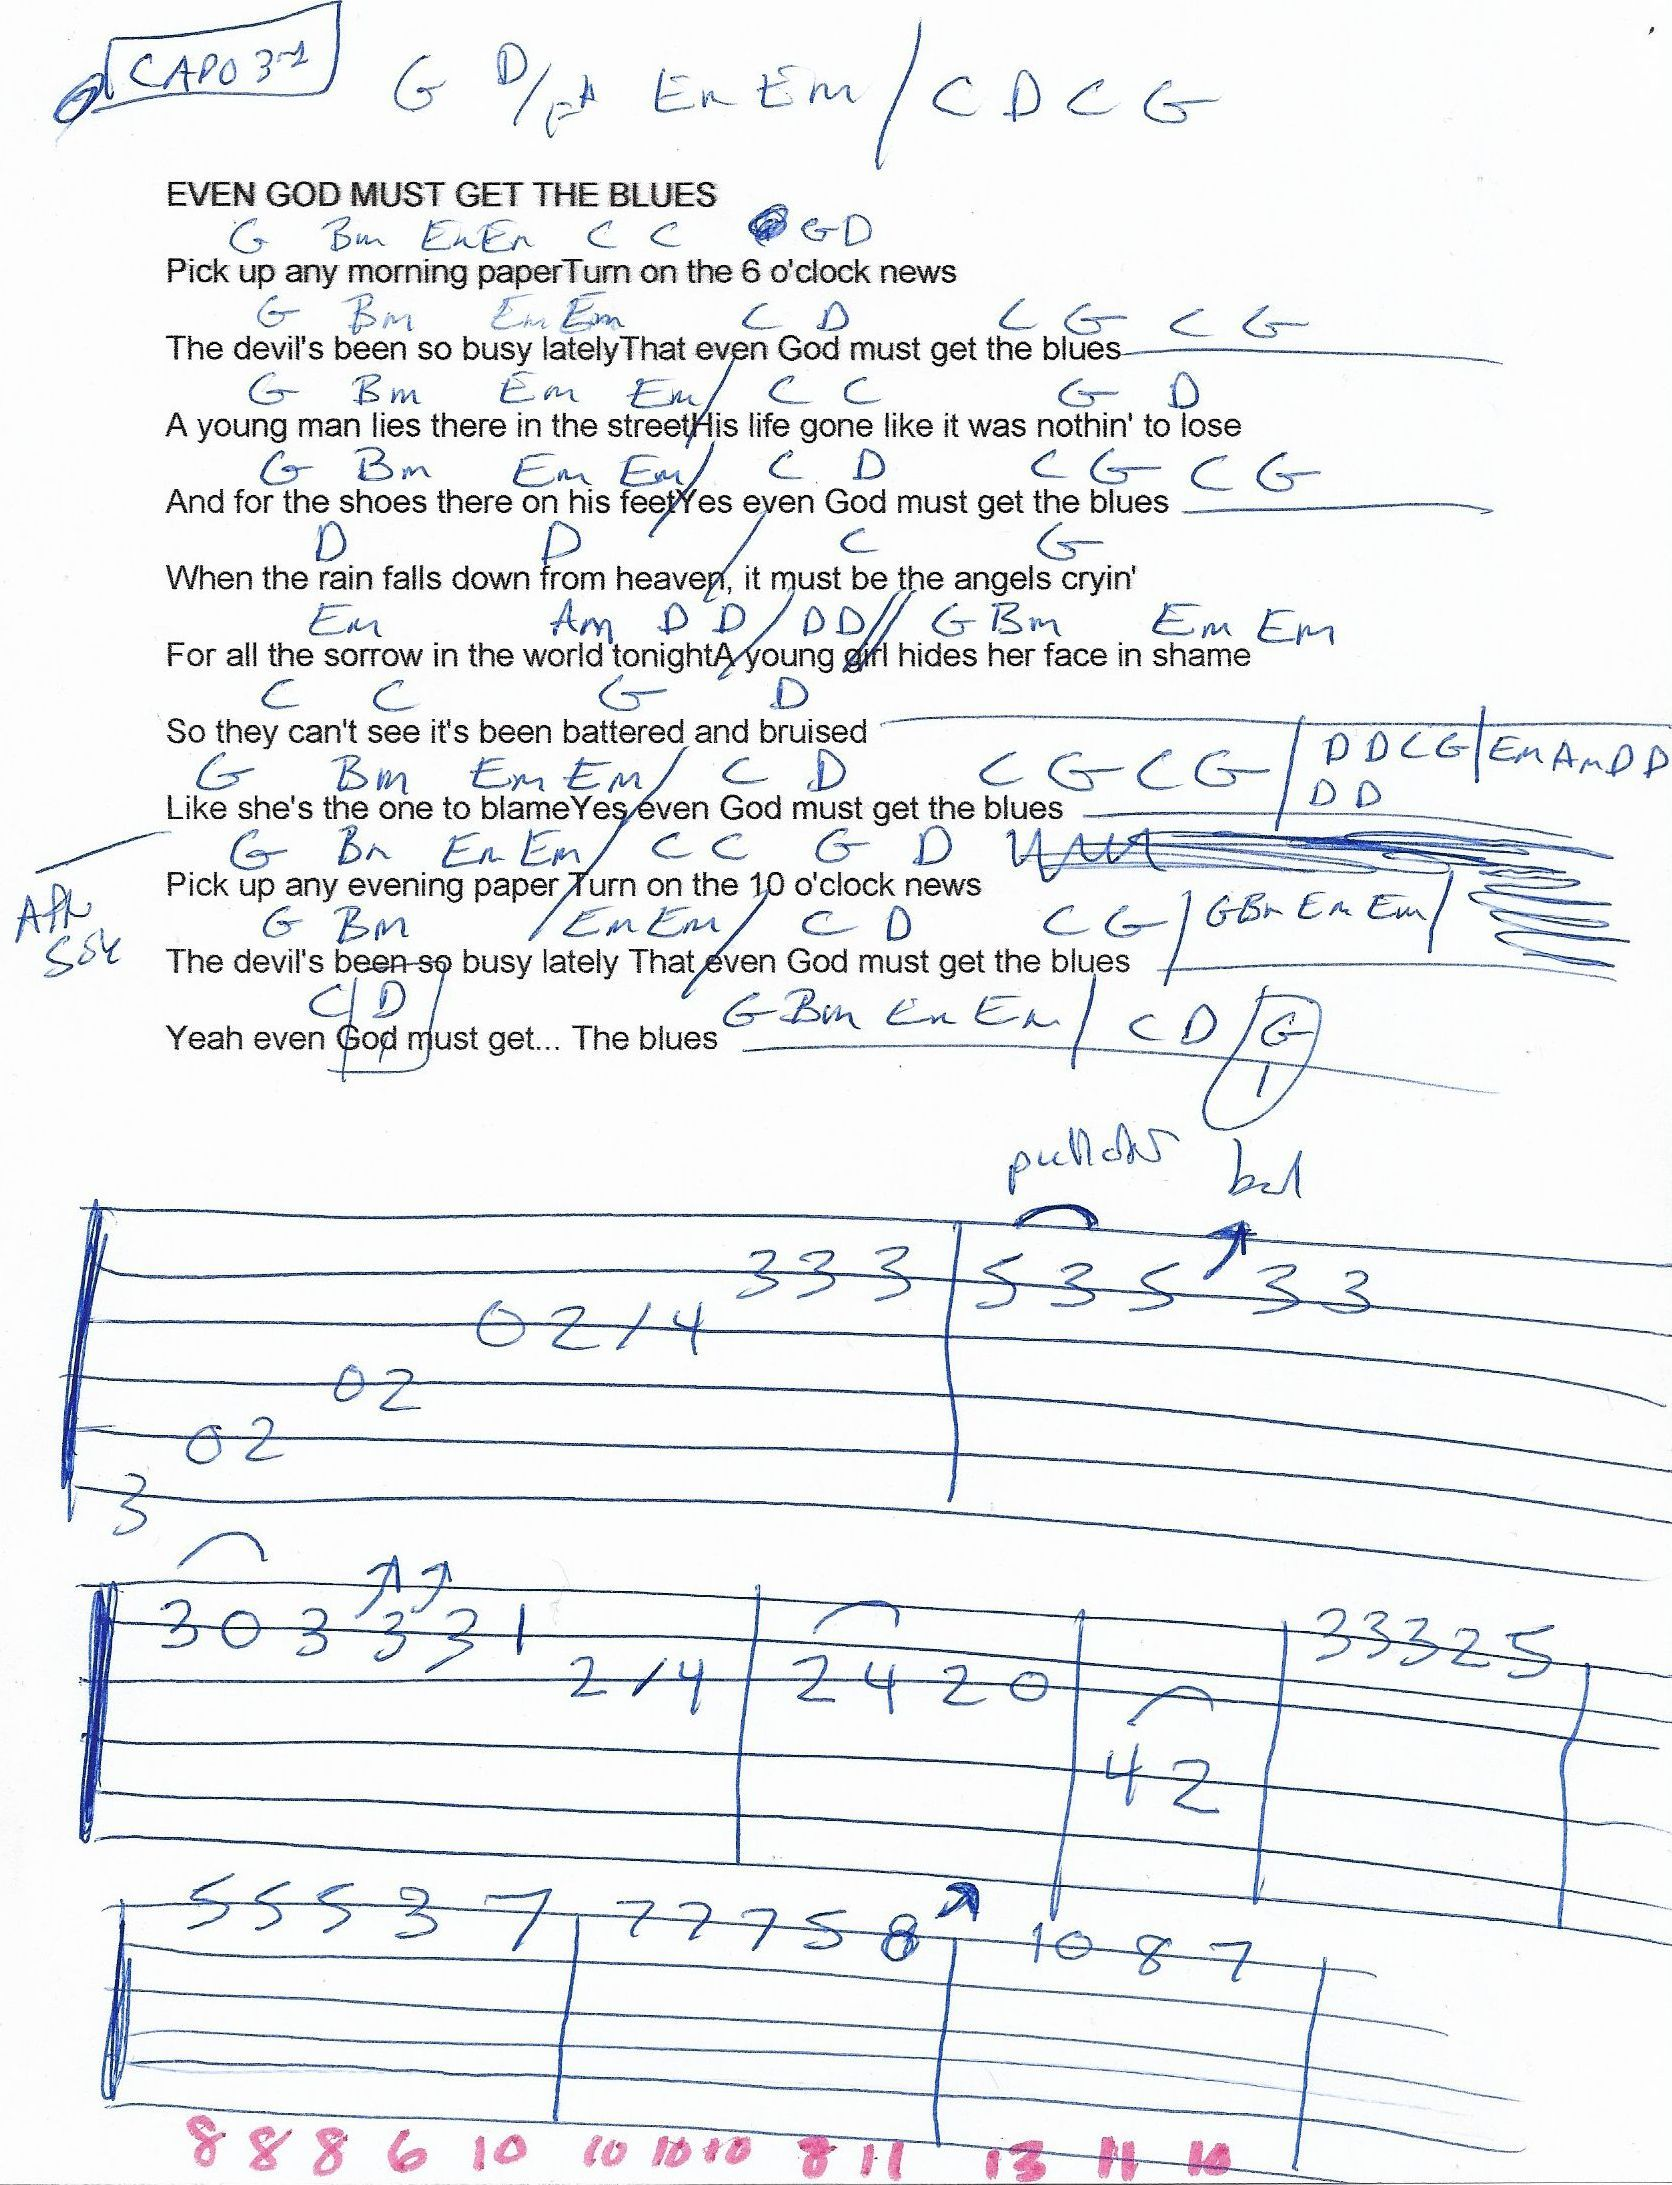 Even God Must Get The Blues Jo Dee Messina Guitar Chord Chart